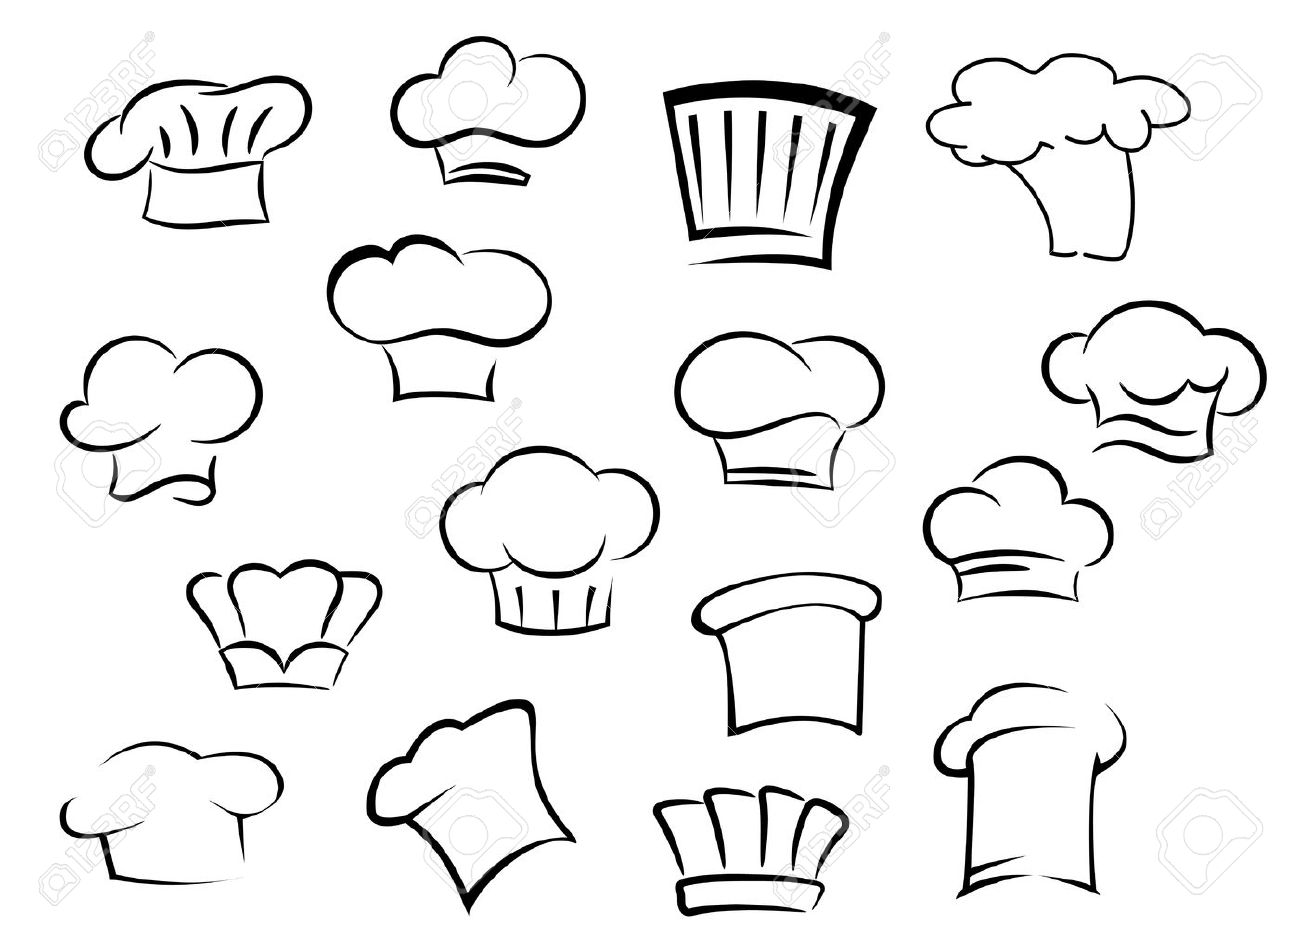 Chef Hats Icons With White Professional Uniform Caps For Kitchen throughout Hats For Kitchen Staff for Home